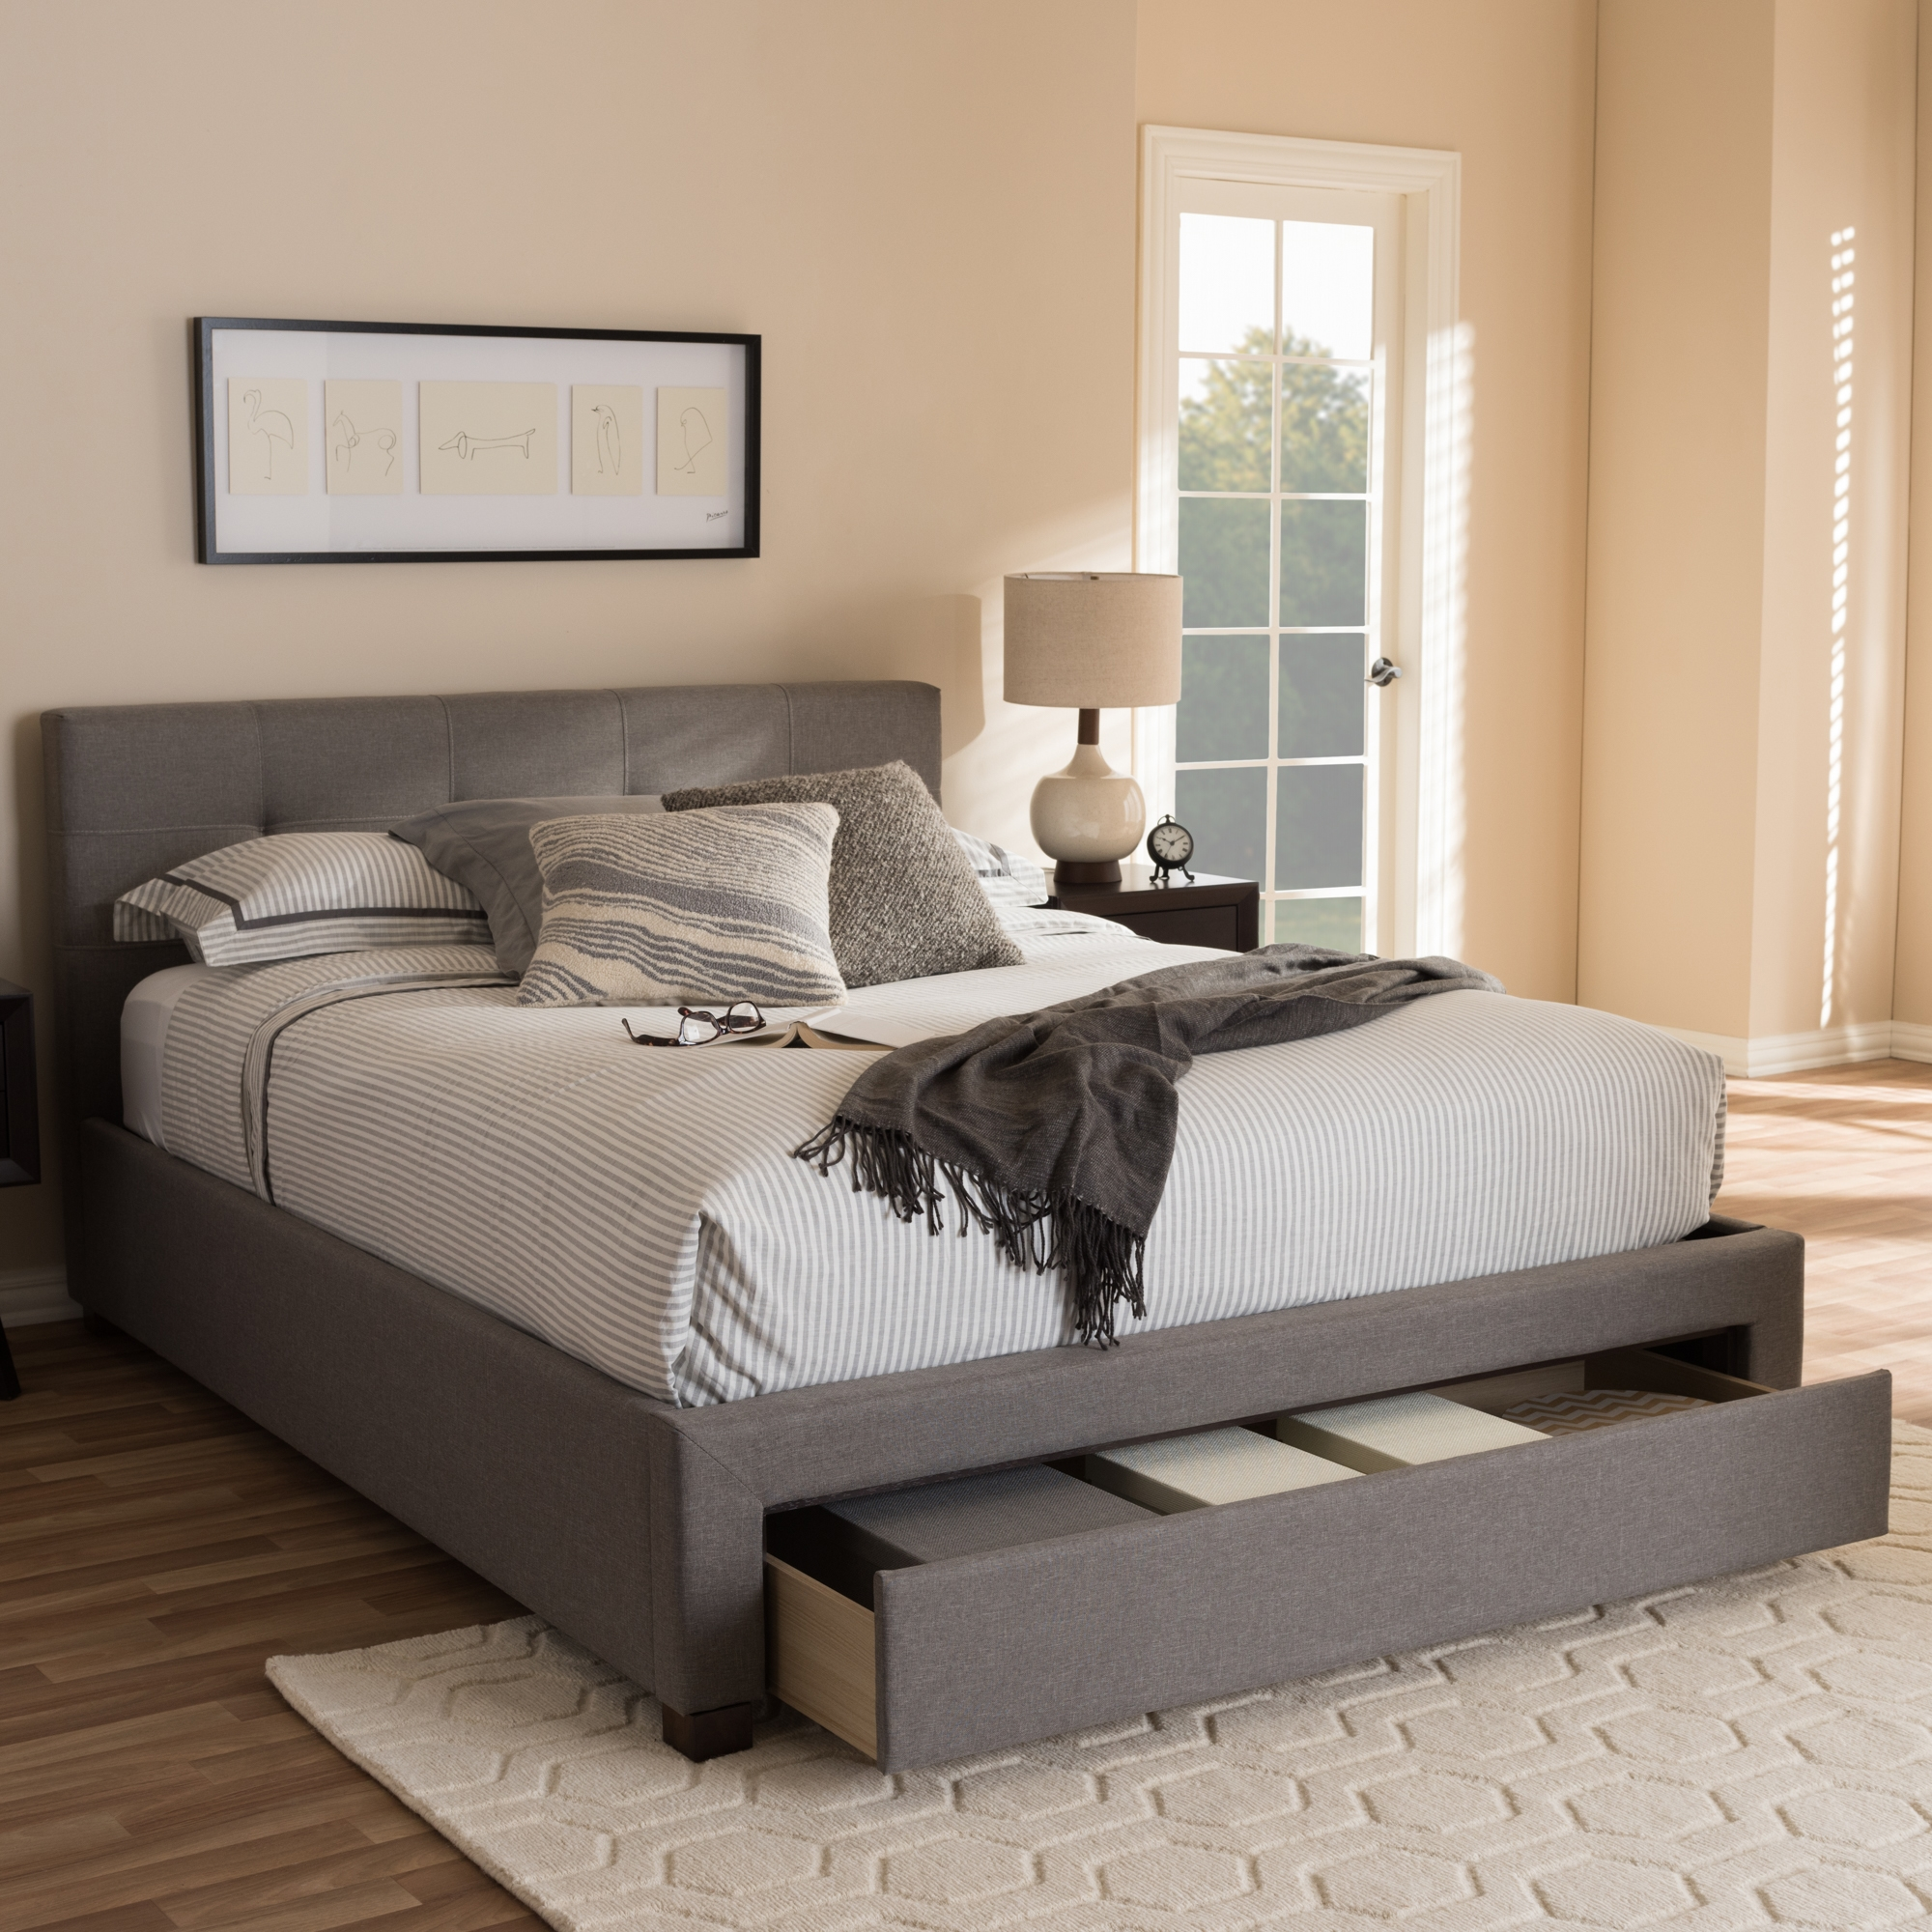 ... Baxton Studio Brandy Modern And Contemporary Grey Fabric Upholstered Queen  Size Platform Bed With Storage Drawer ...